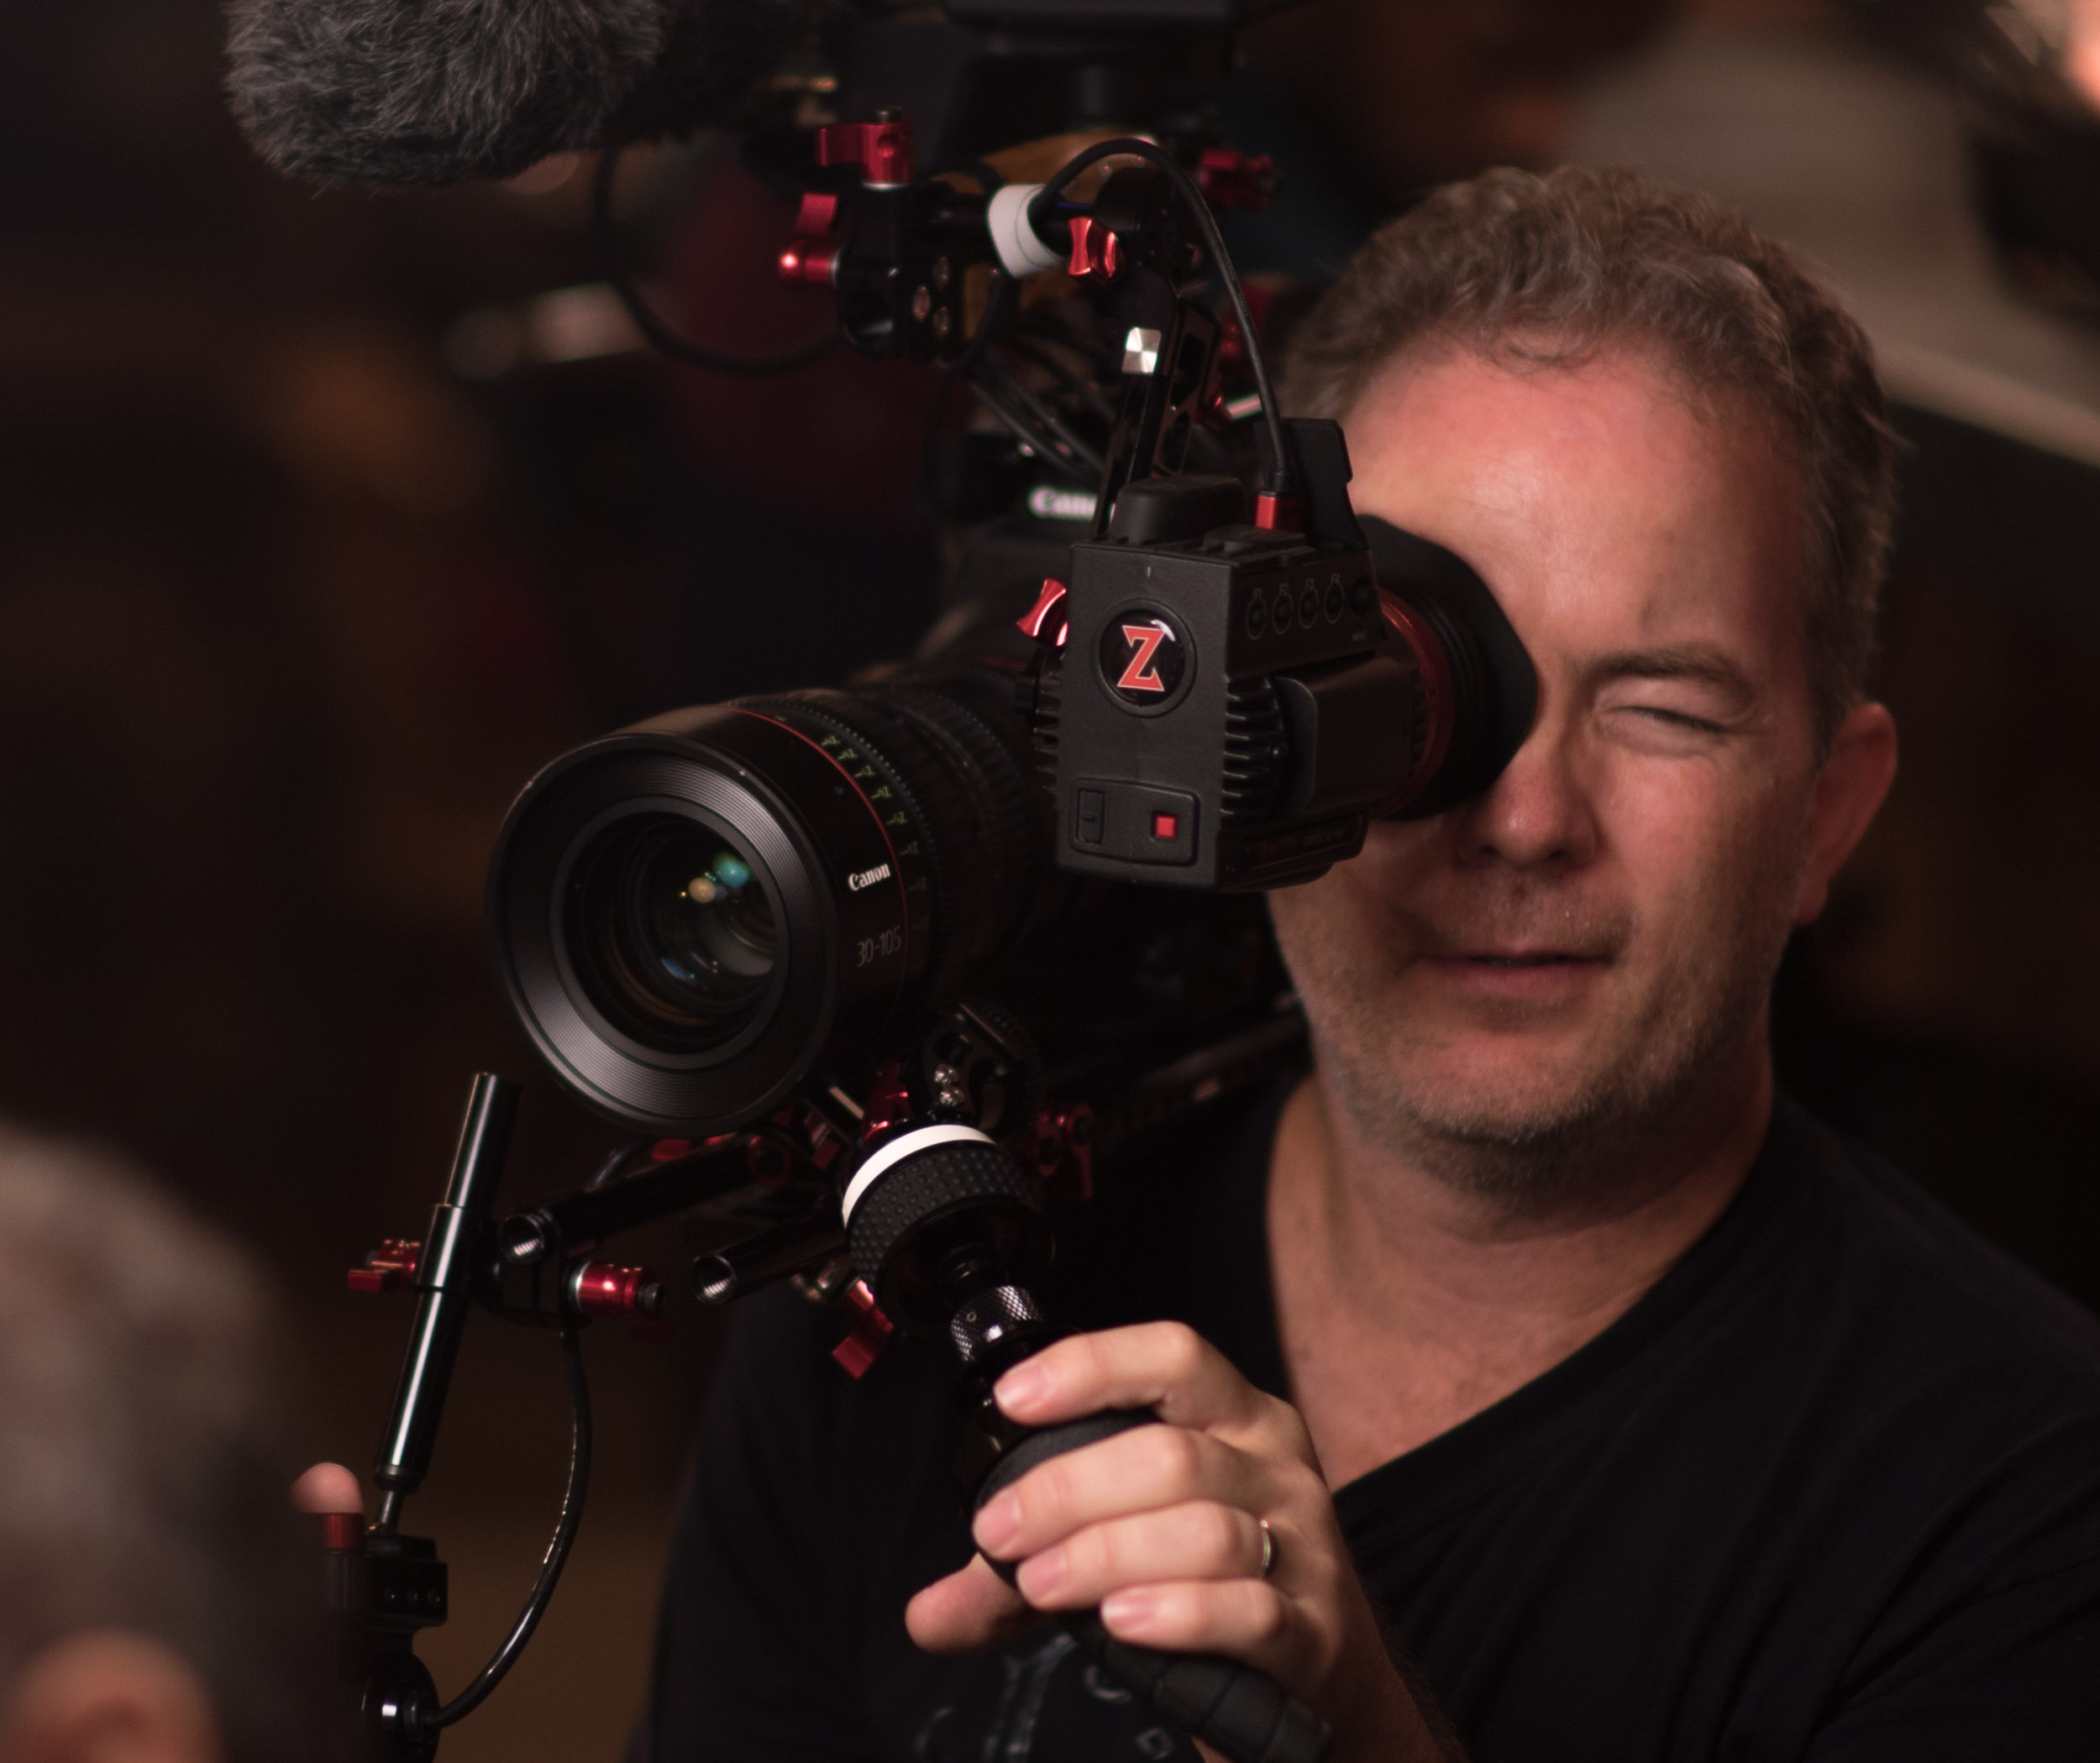 C300 Mark II with modified Zacuto Recoil Rig and Gratical.